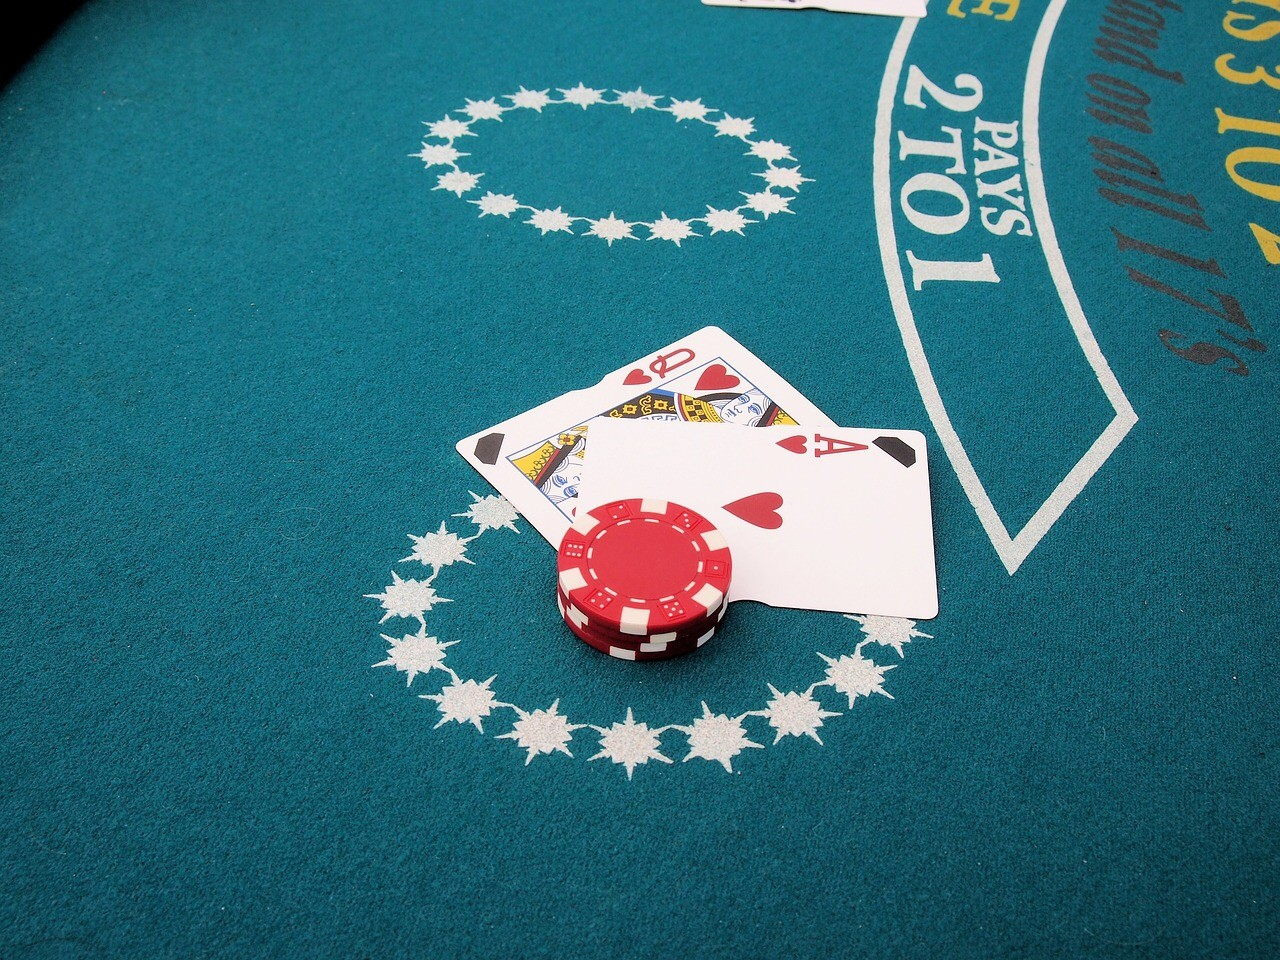 The Rules Of Casino Poker